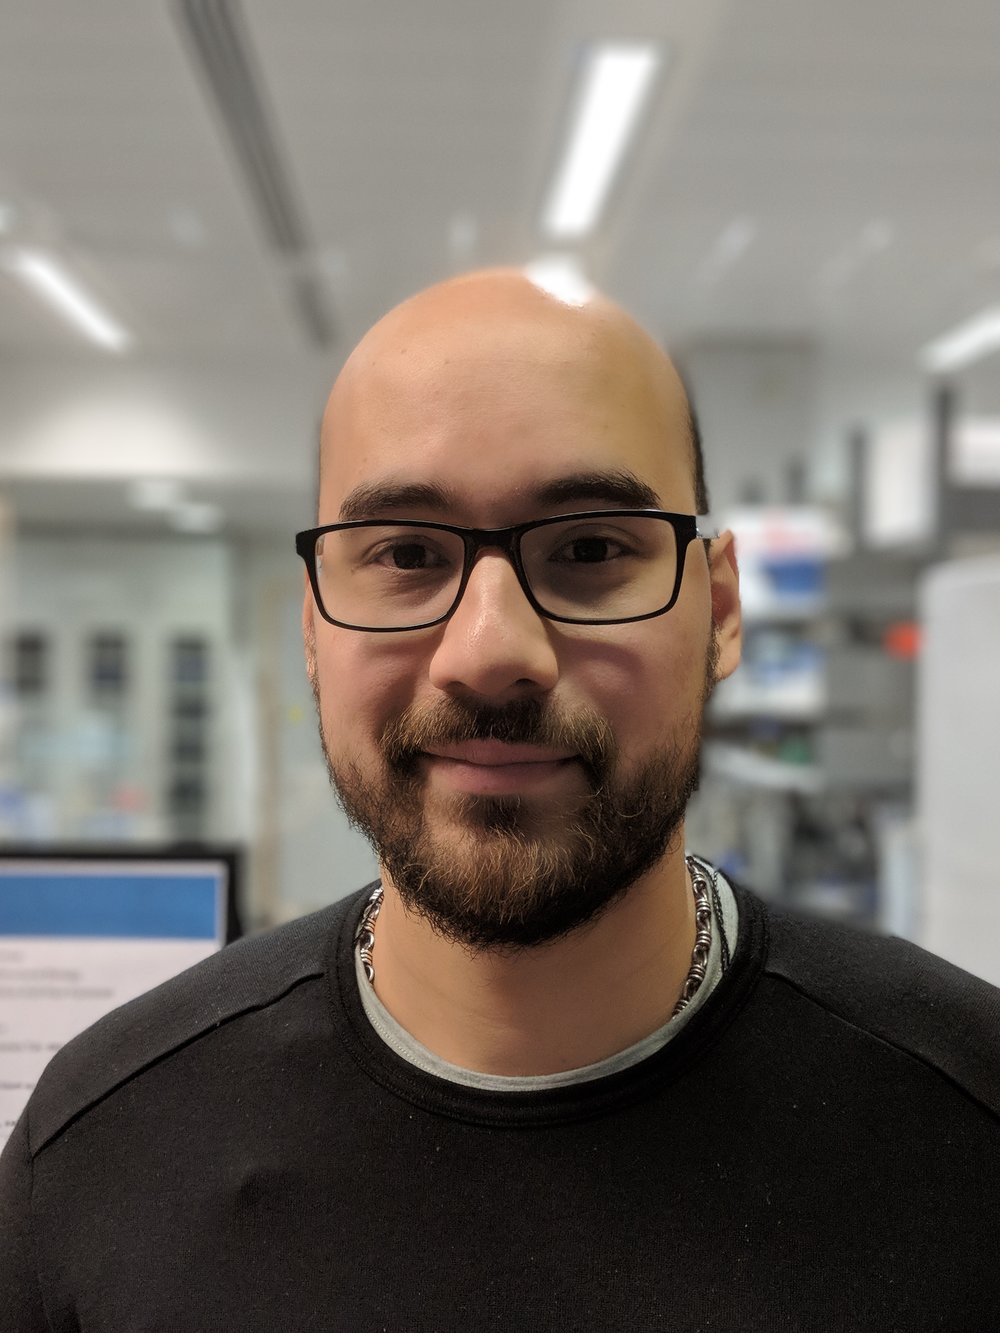 Dr Oliver Willhoft  Earned his PhD in Structural Biology from the Institute of Structural and Molecular Biology (ISMB) in London. As a post-doc in the Wigley lab, he has been working on chromatin remodelling complexes of the INO80 family